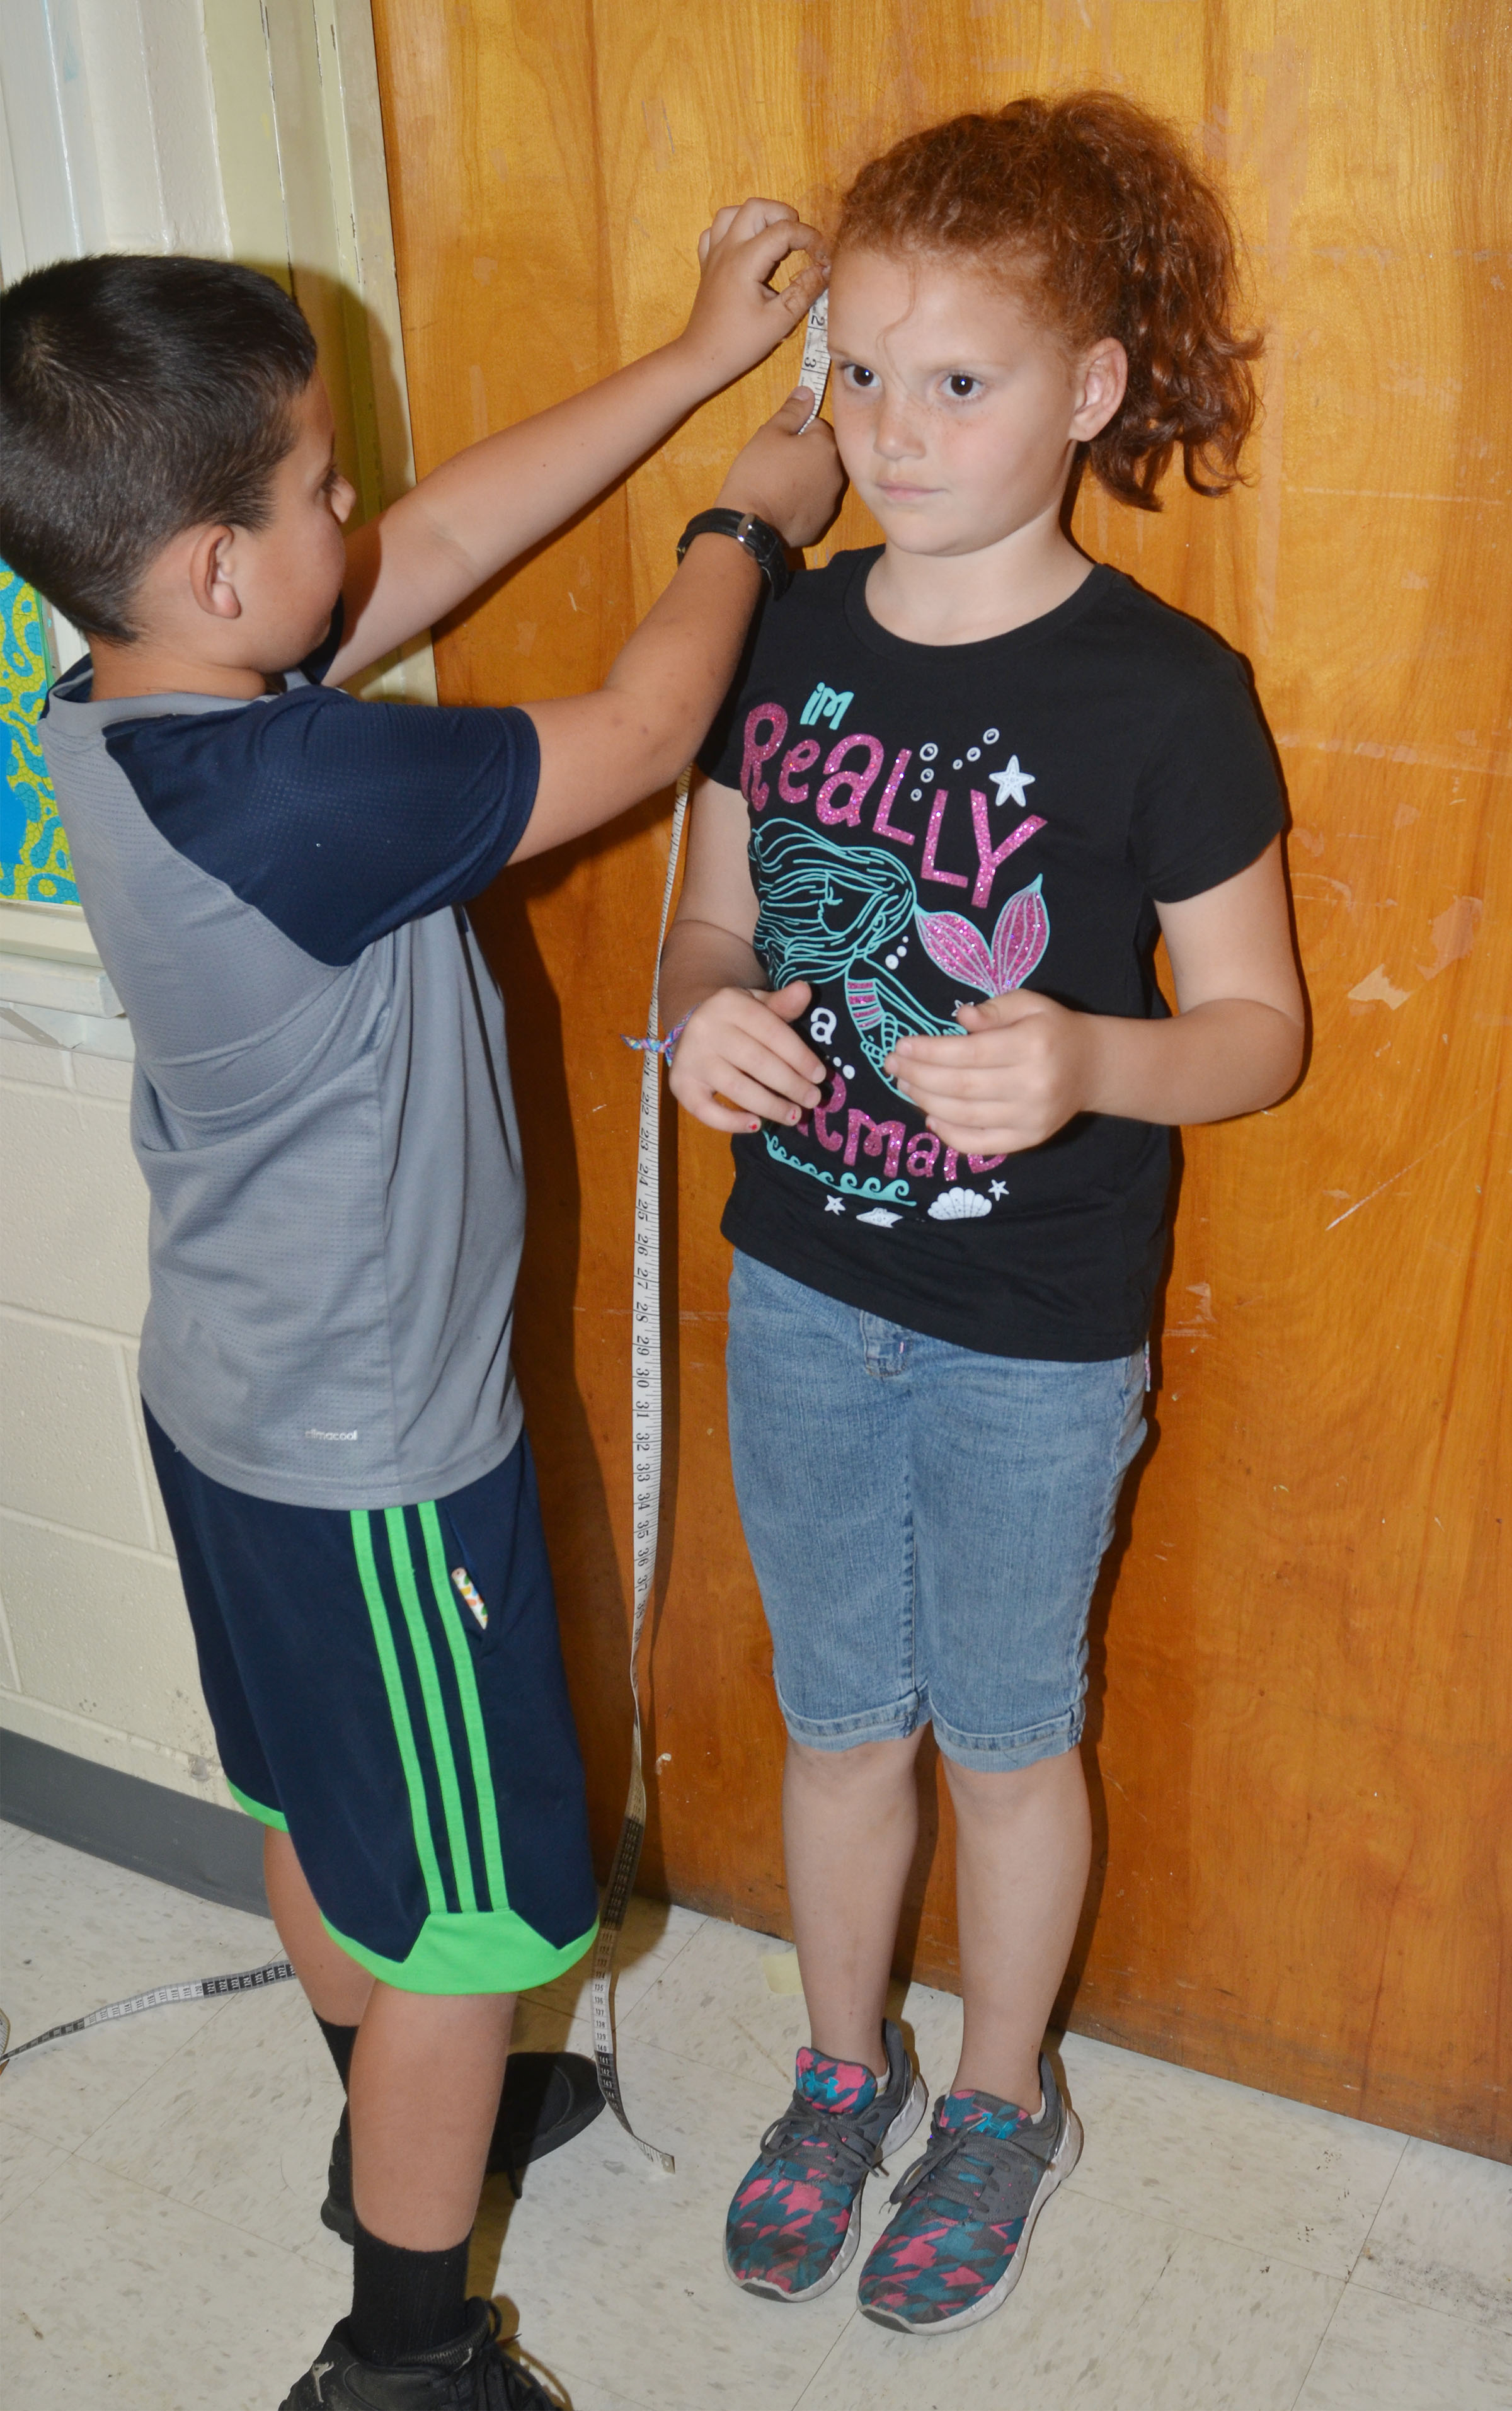 CES second-grader Damien Clark measures Analeigh Foster.